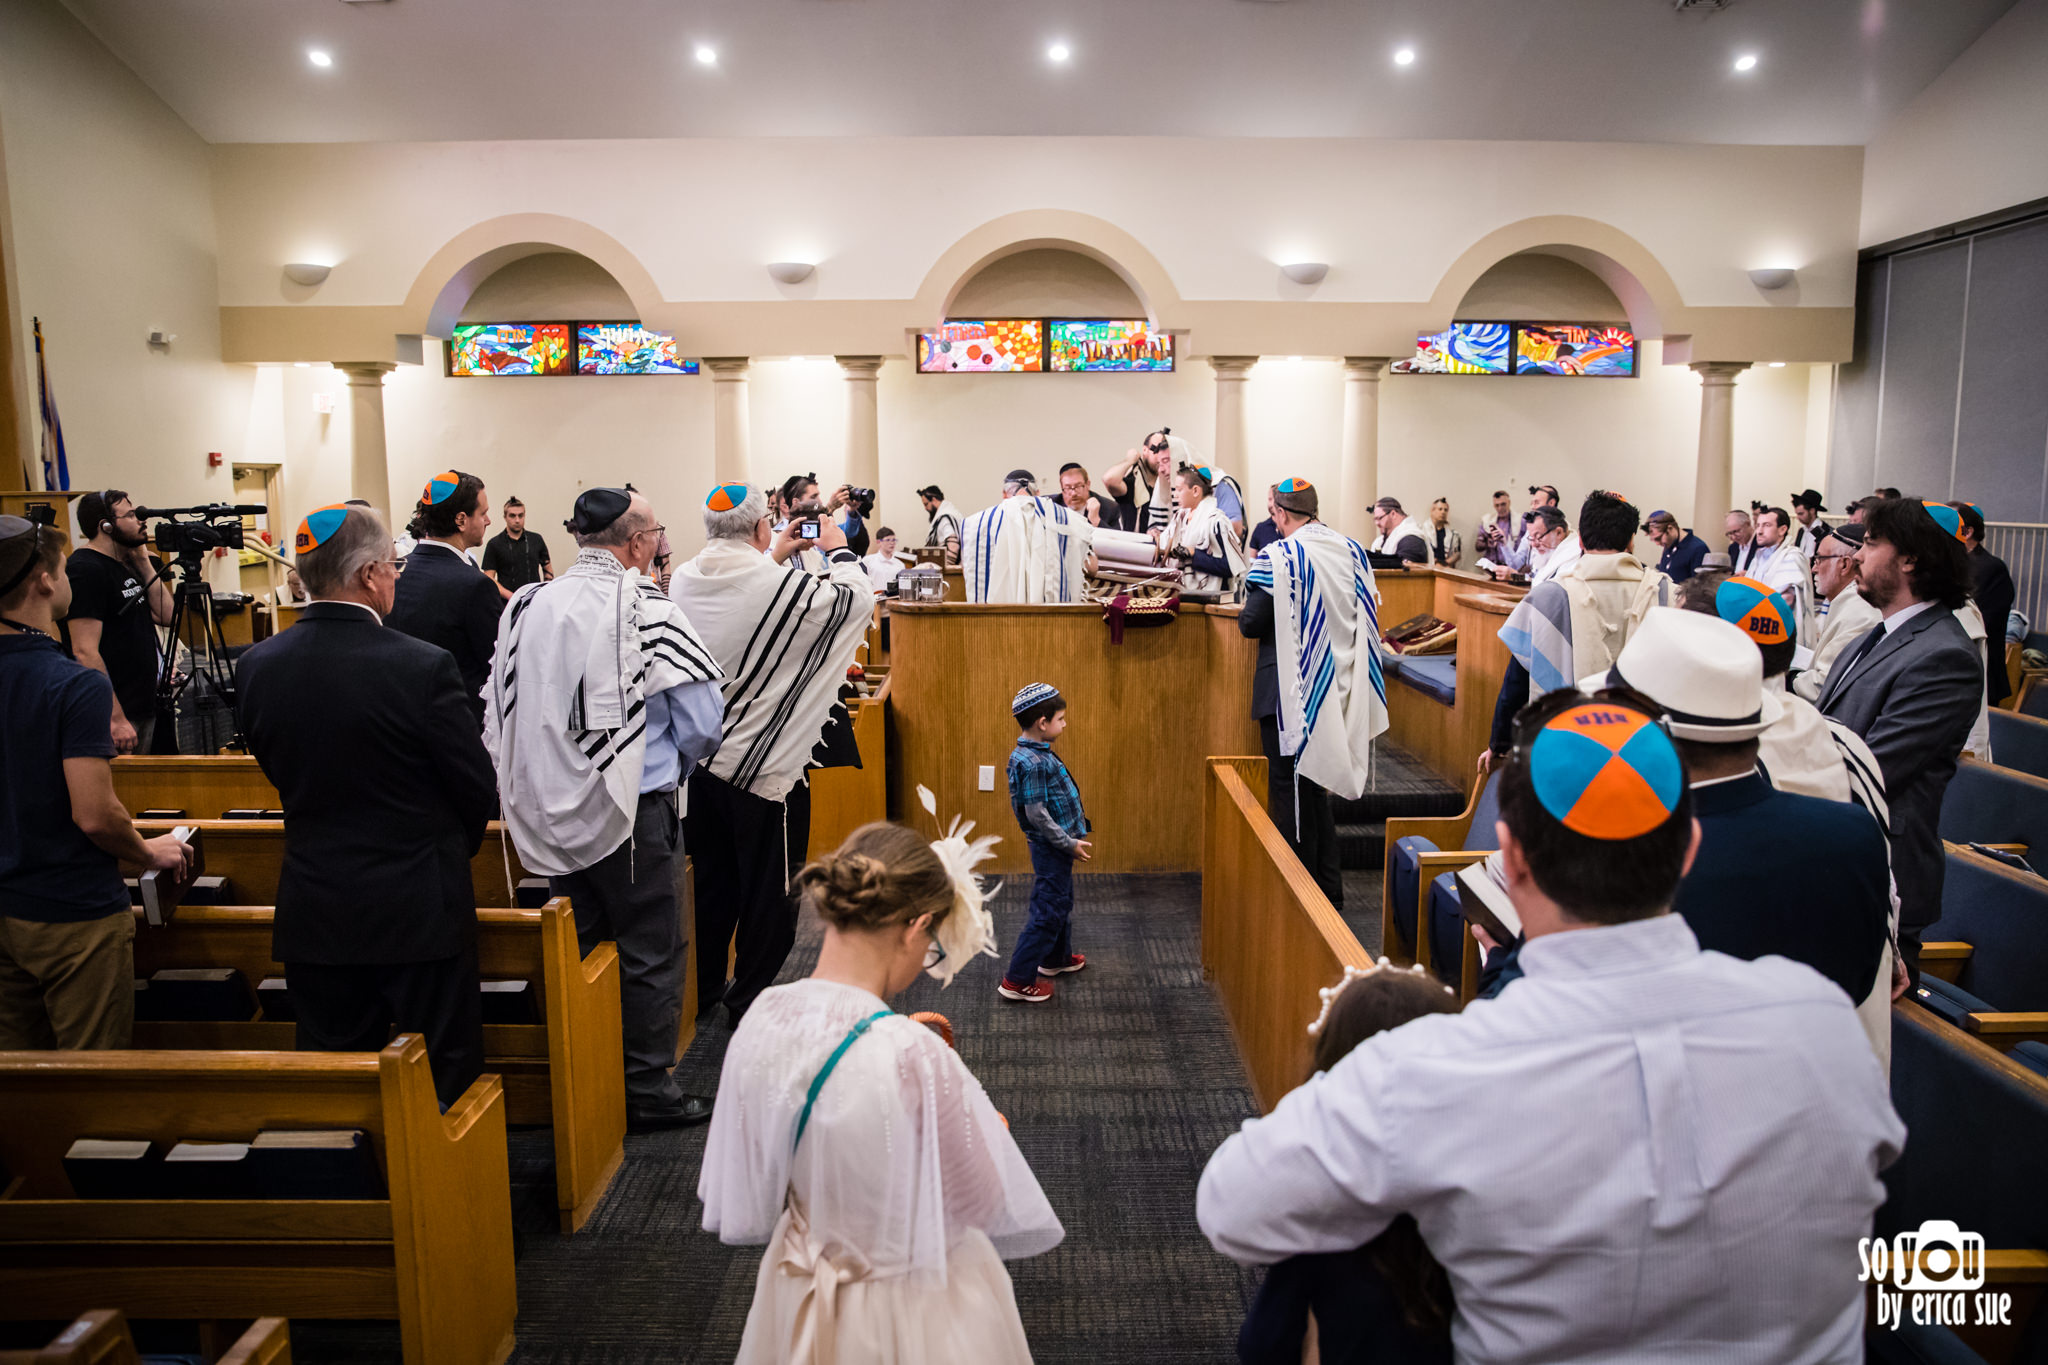 so-you-by-erica-sue-young-israel-hollywood-fl-mitzvah-photographer-5418.JPG